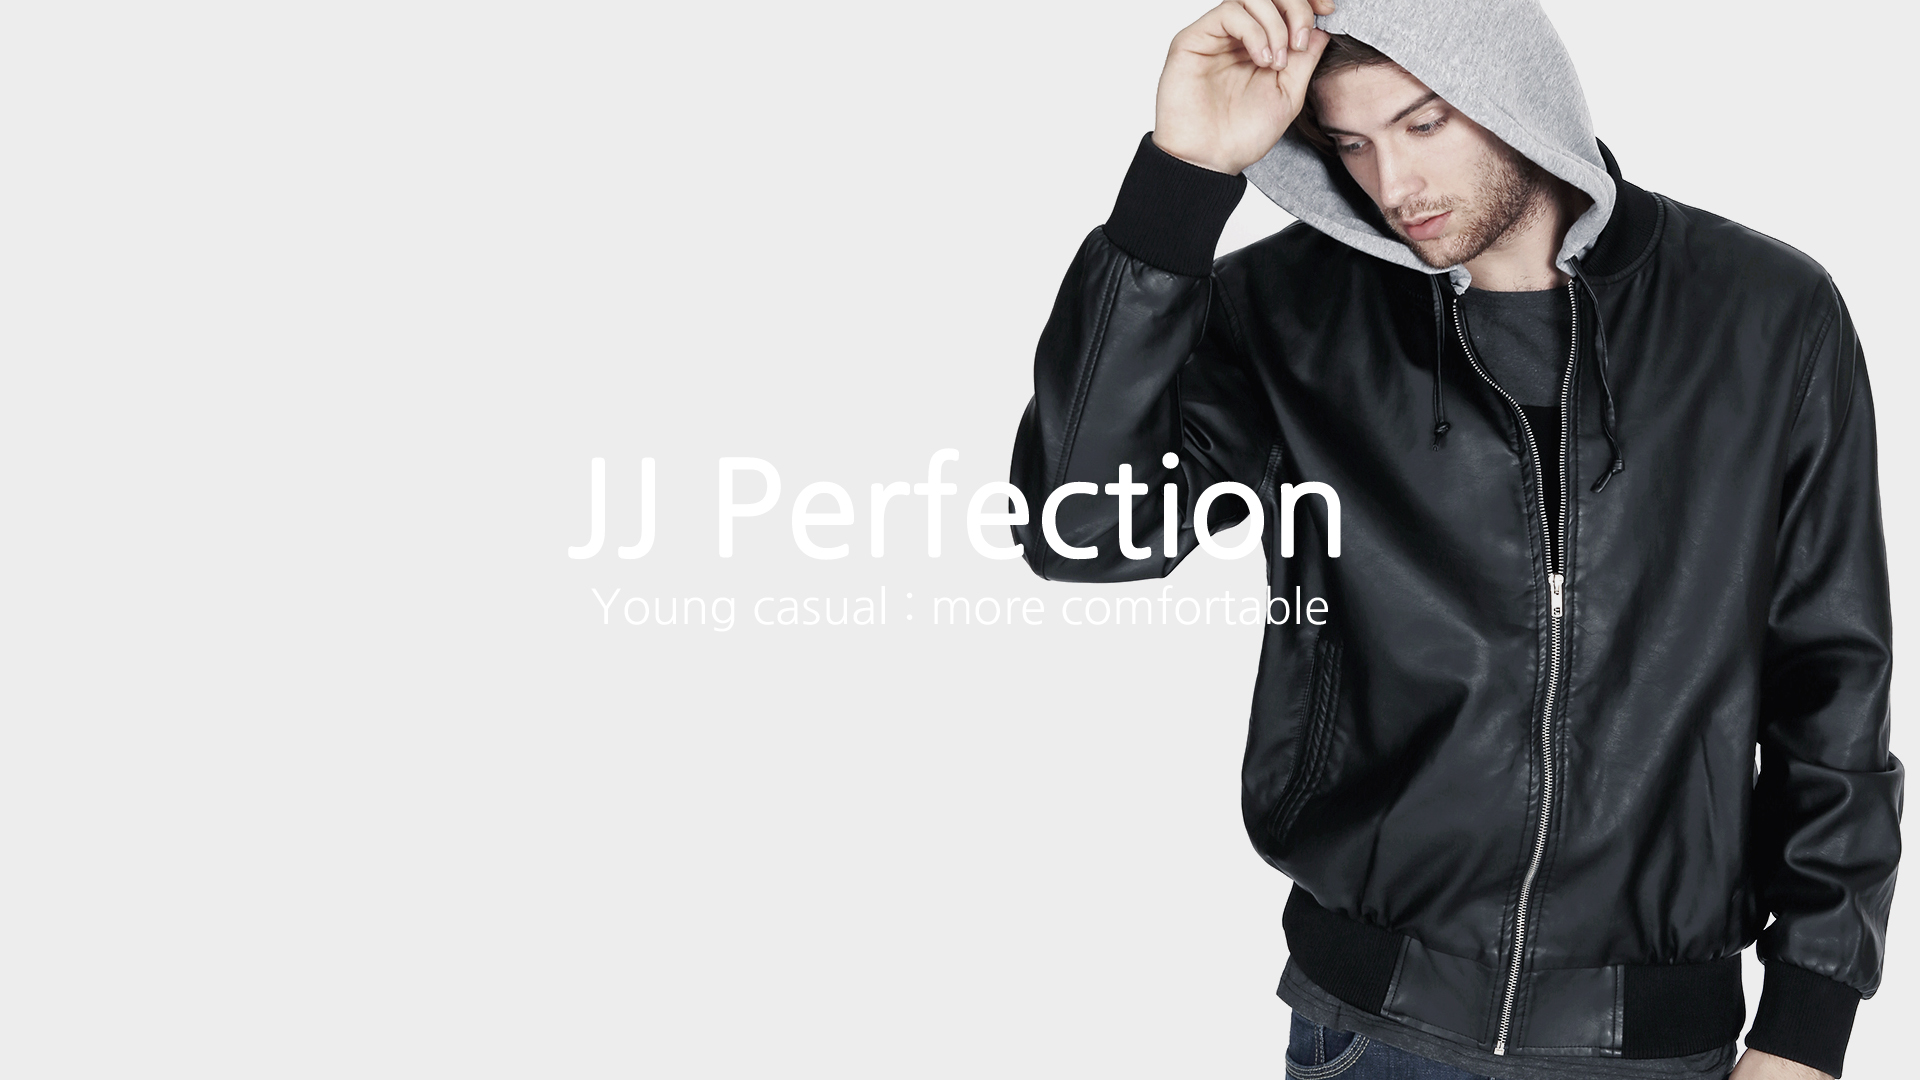 JJ PERFECTION